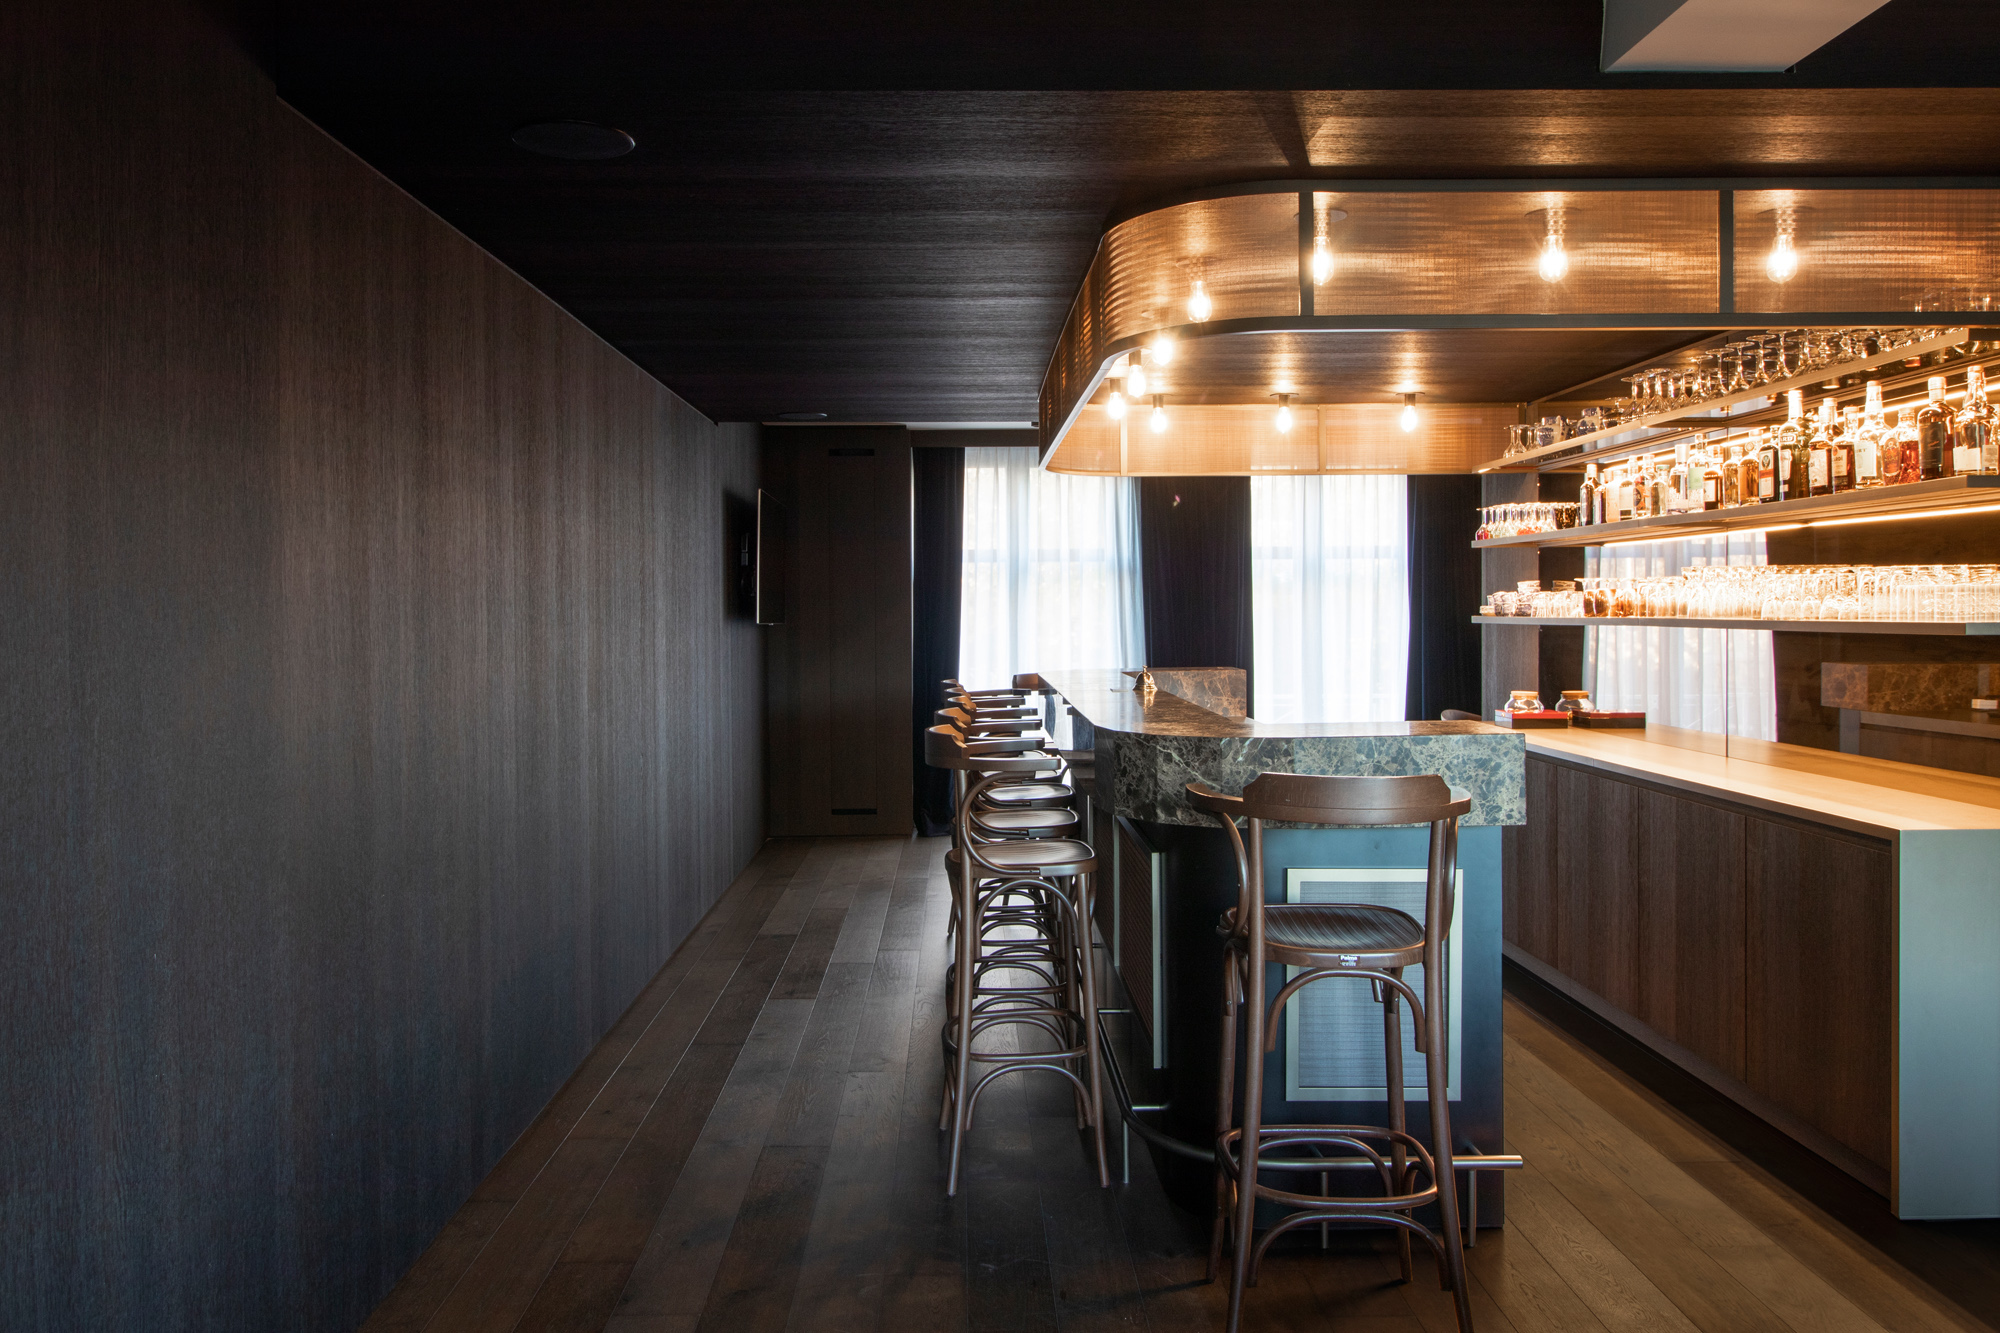 Design: WeWantMore - Realisation: Luyten Interior Contractors - Photo: Bert Demasure